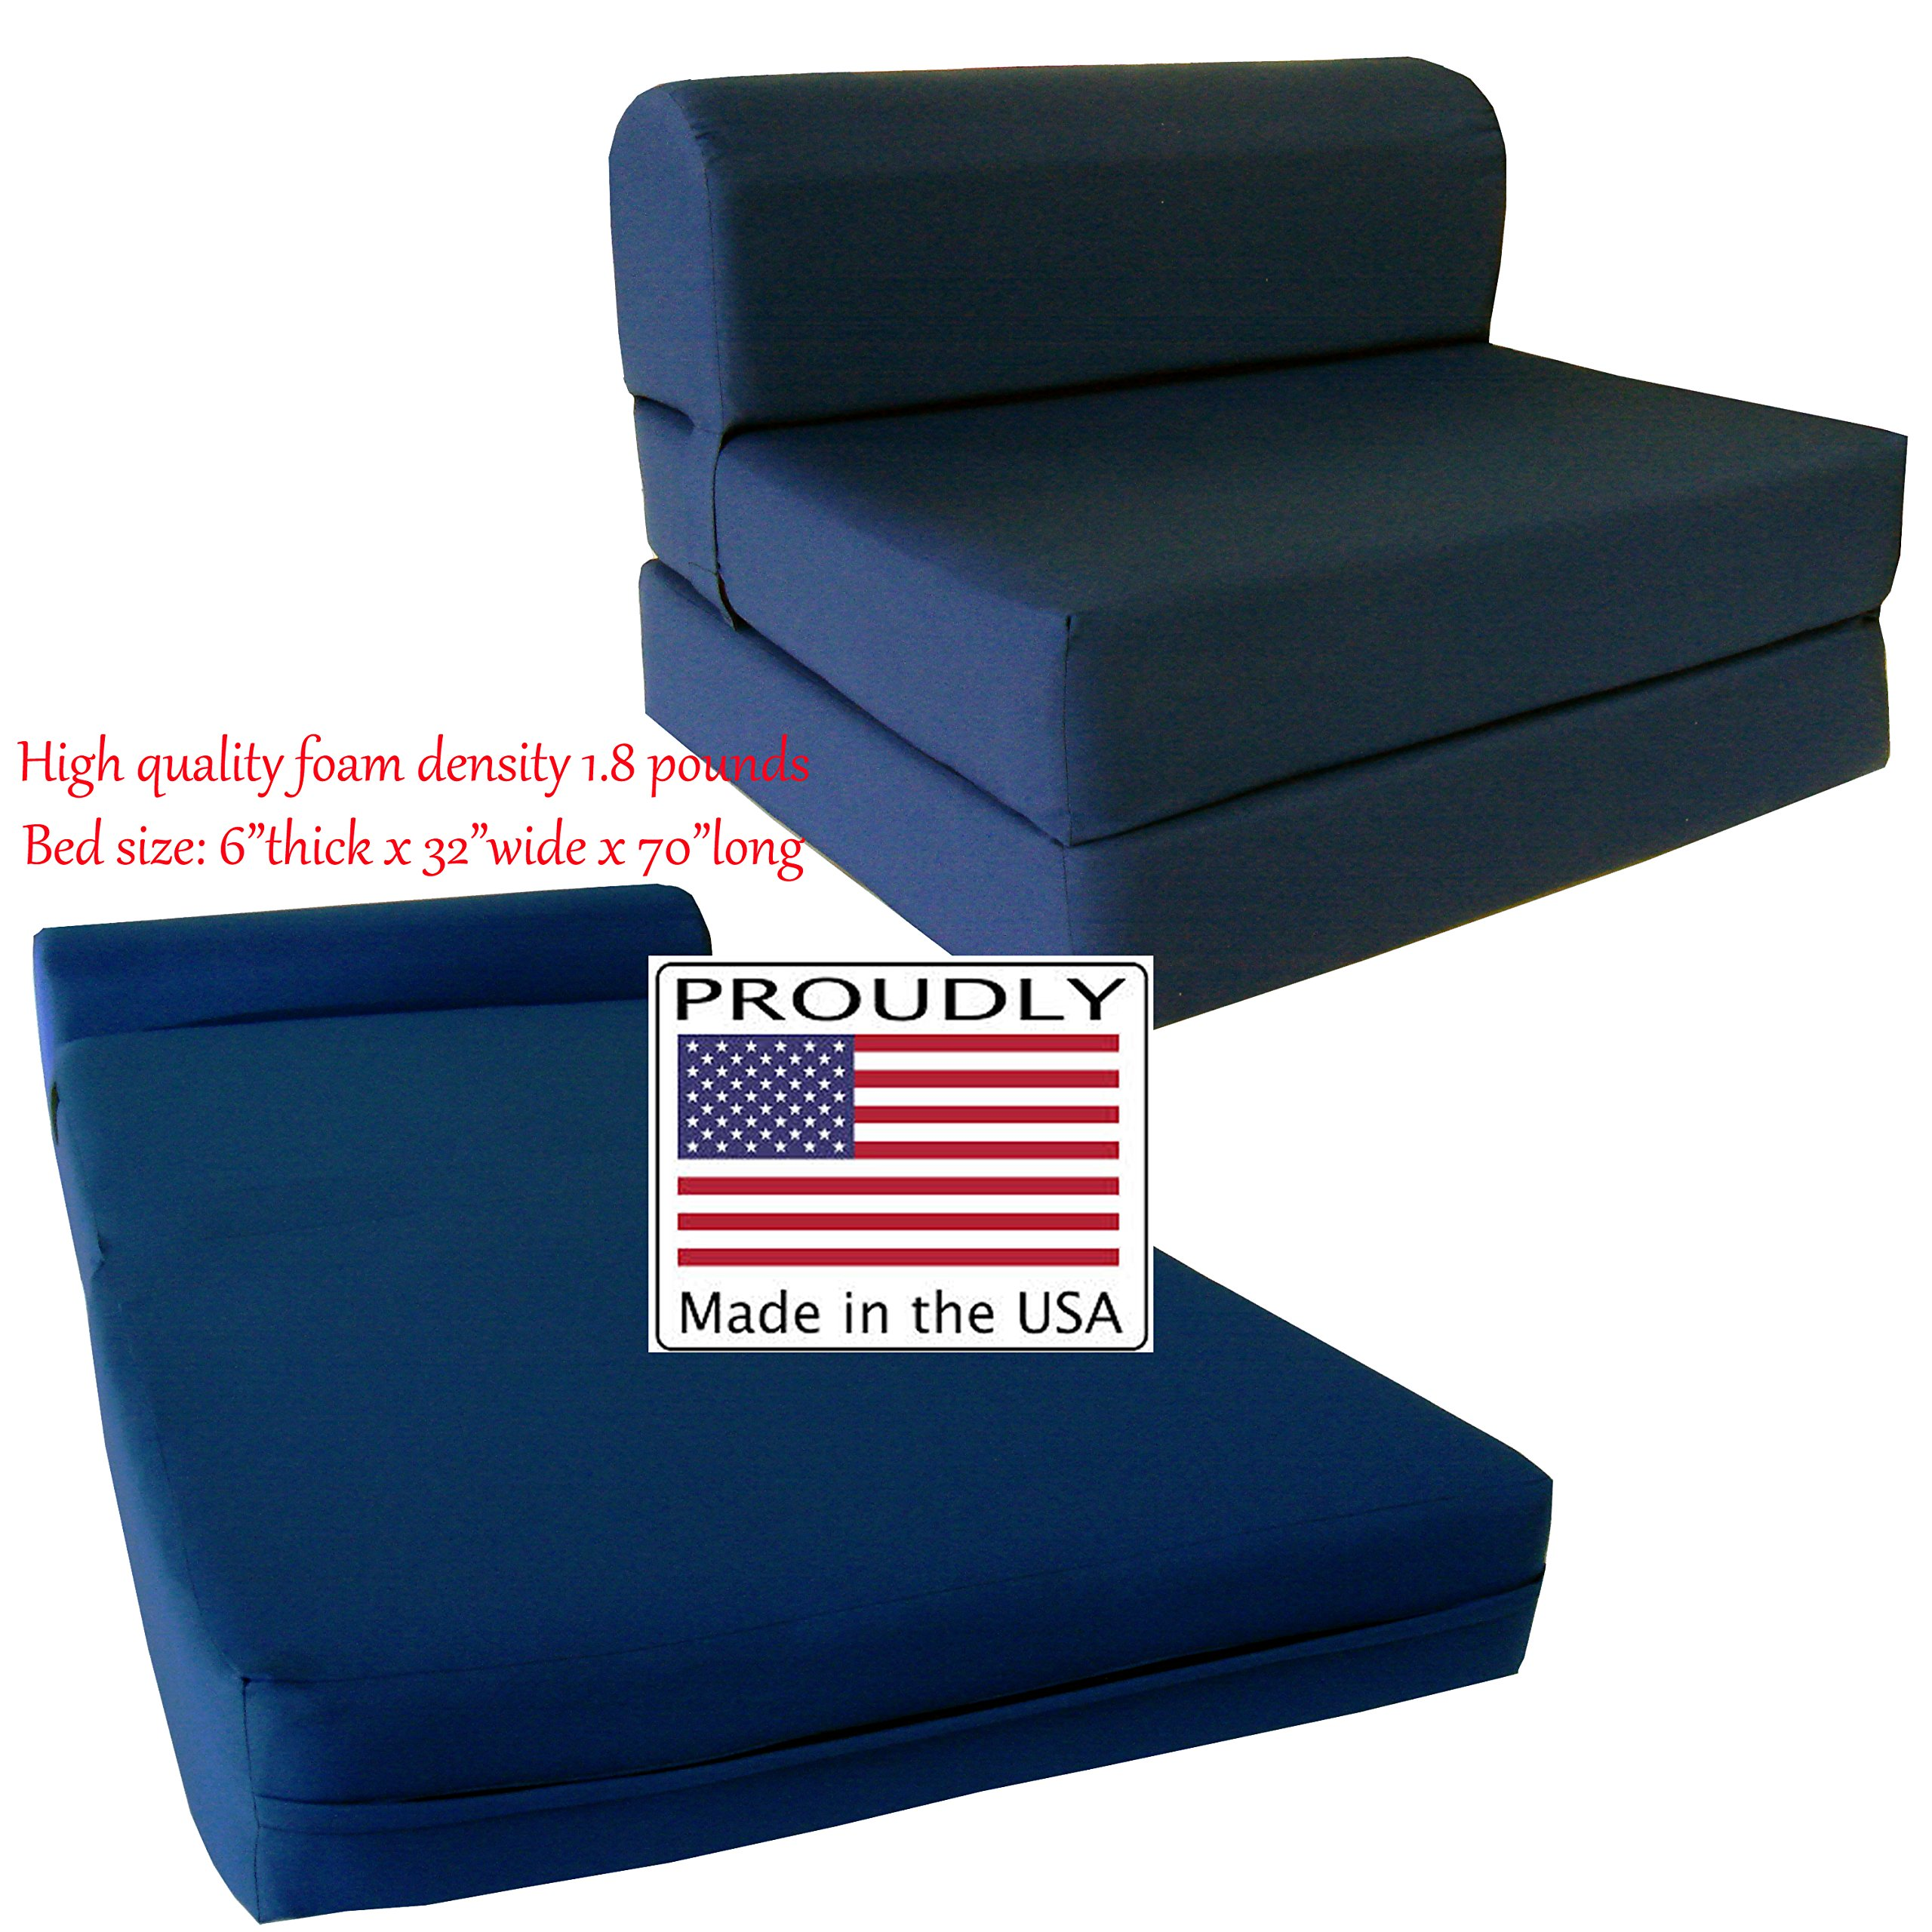 Navy Sleeper Chair Folding Foam Bed Sized 6'' Thick X 32'' Wide X 70'' Long, Studio Guest Foldable Chair Beds, Foam Sofa, Couch, High Density Foam 1.8 Pounds. by D&D Futon Furniture